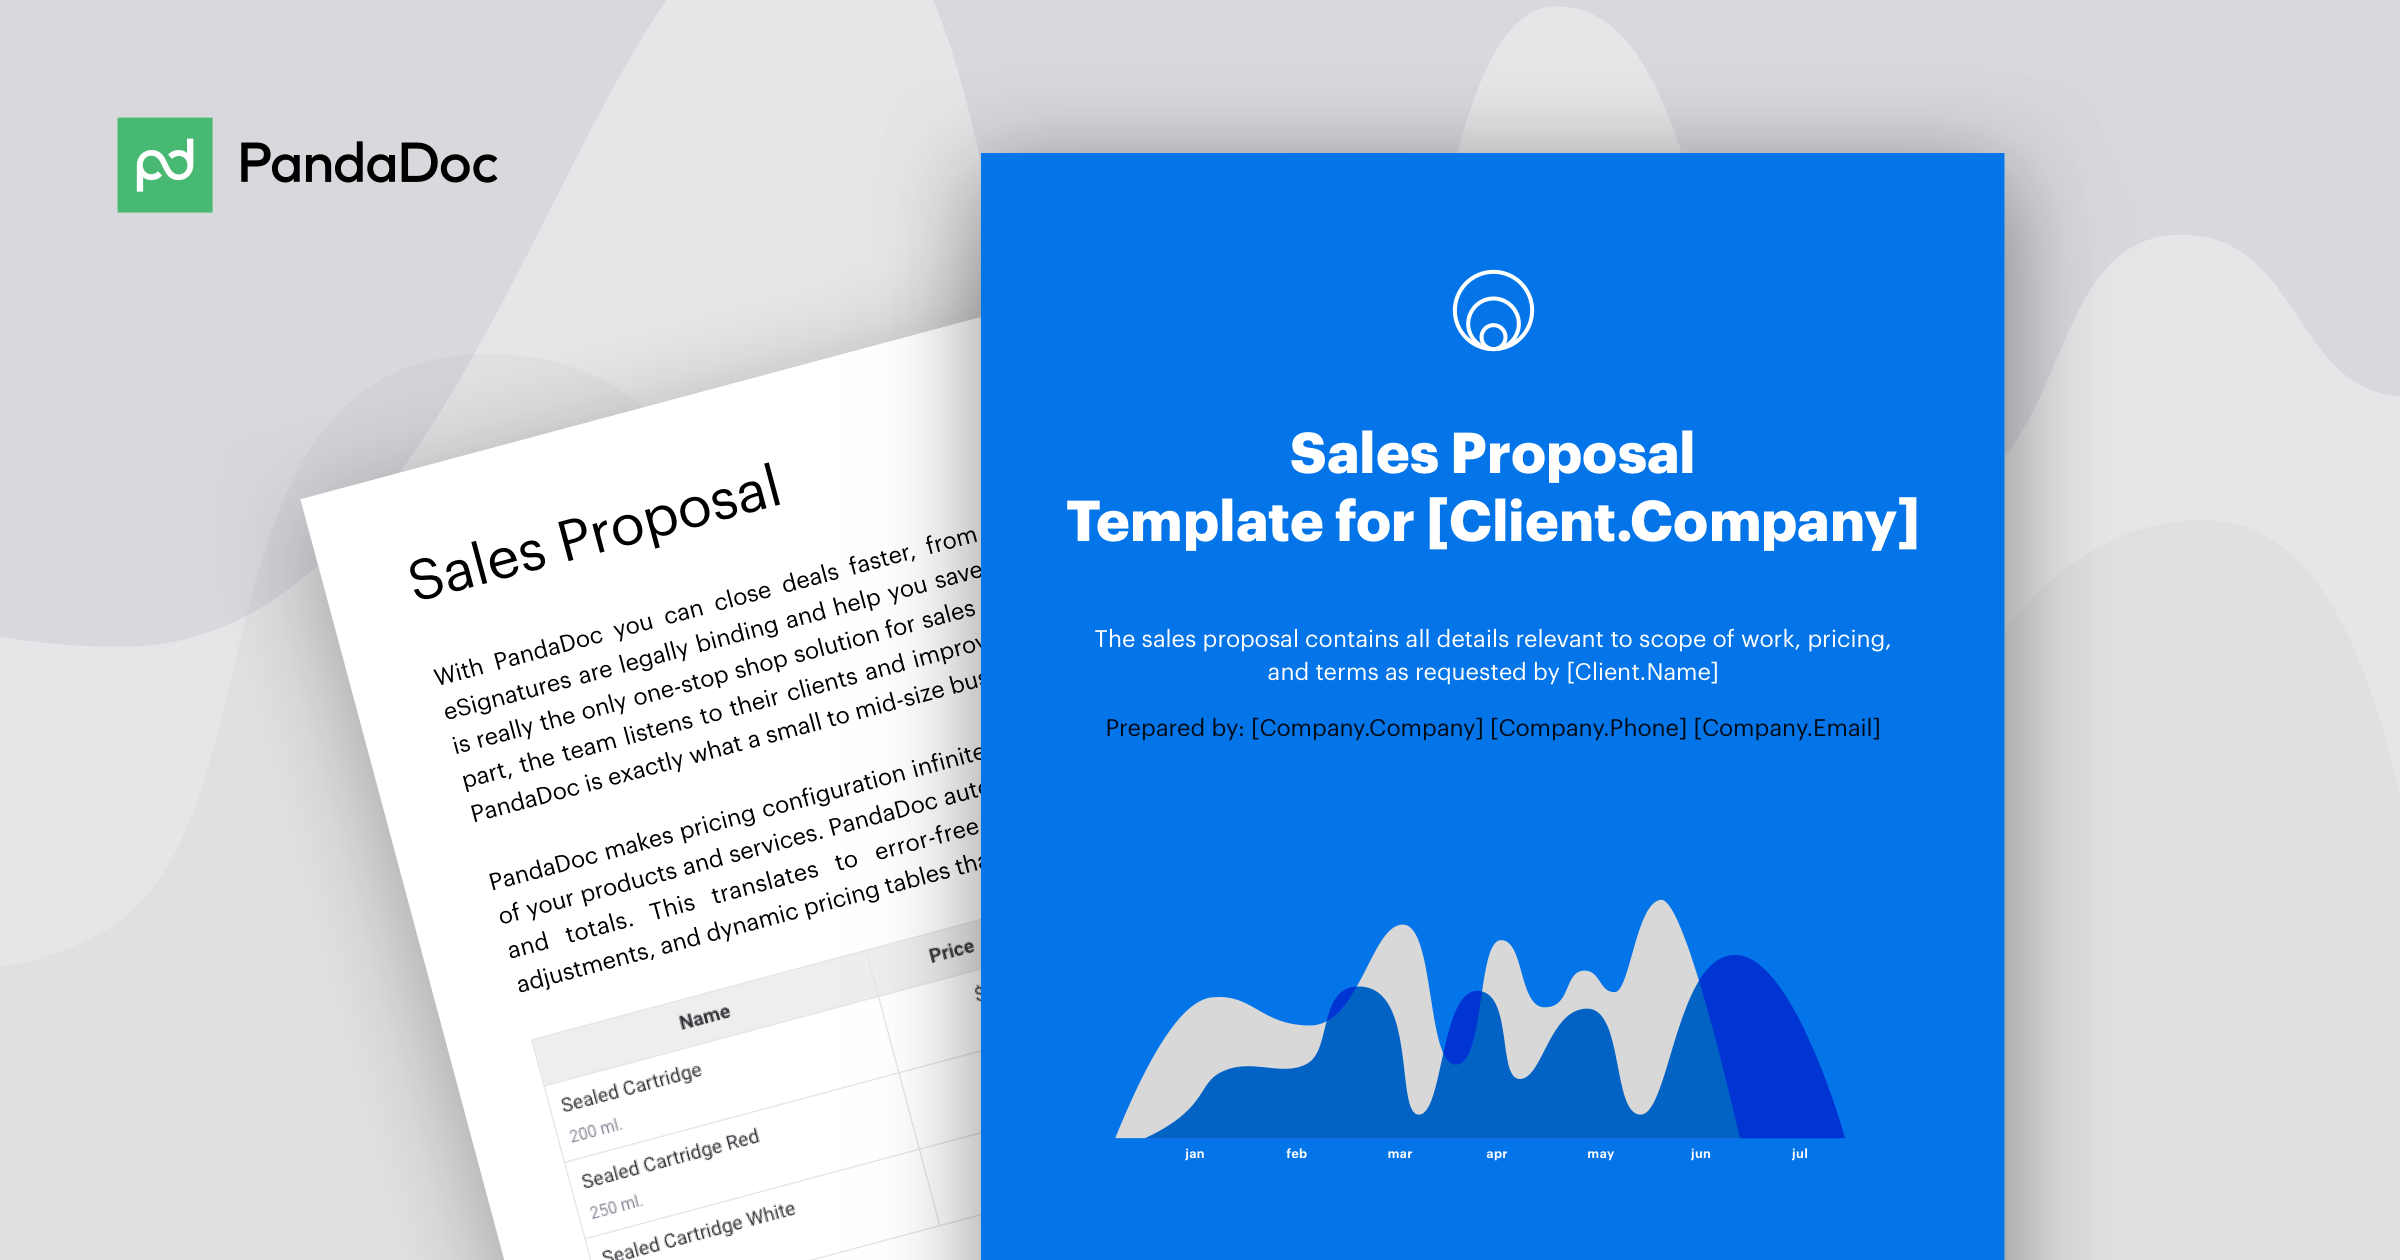 5 Business Tips: How to Write a Sales Proposal [FREE Templates]